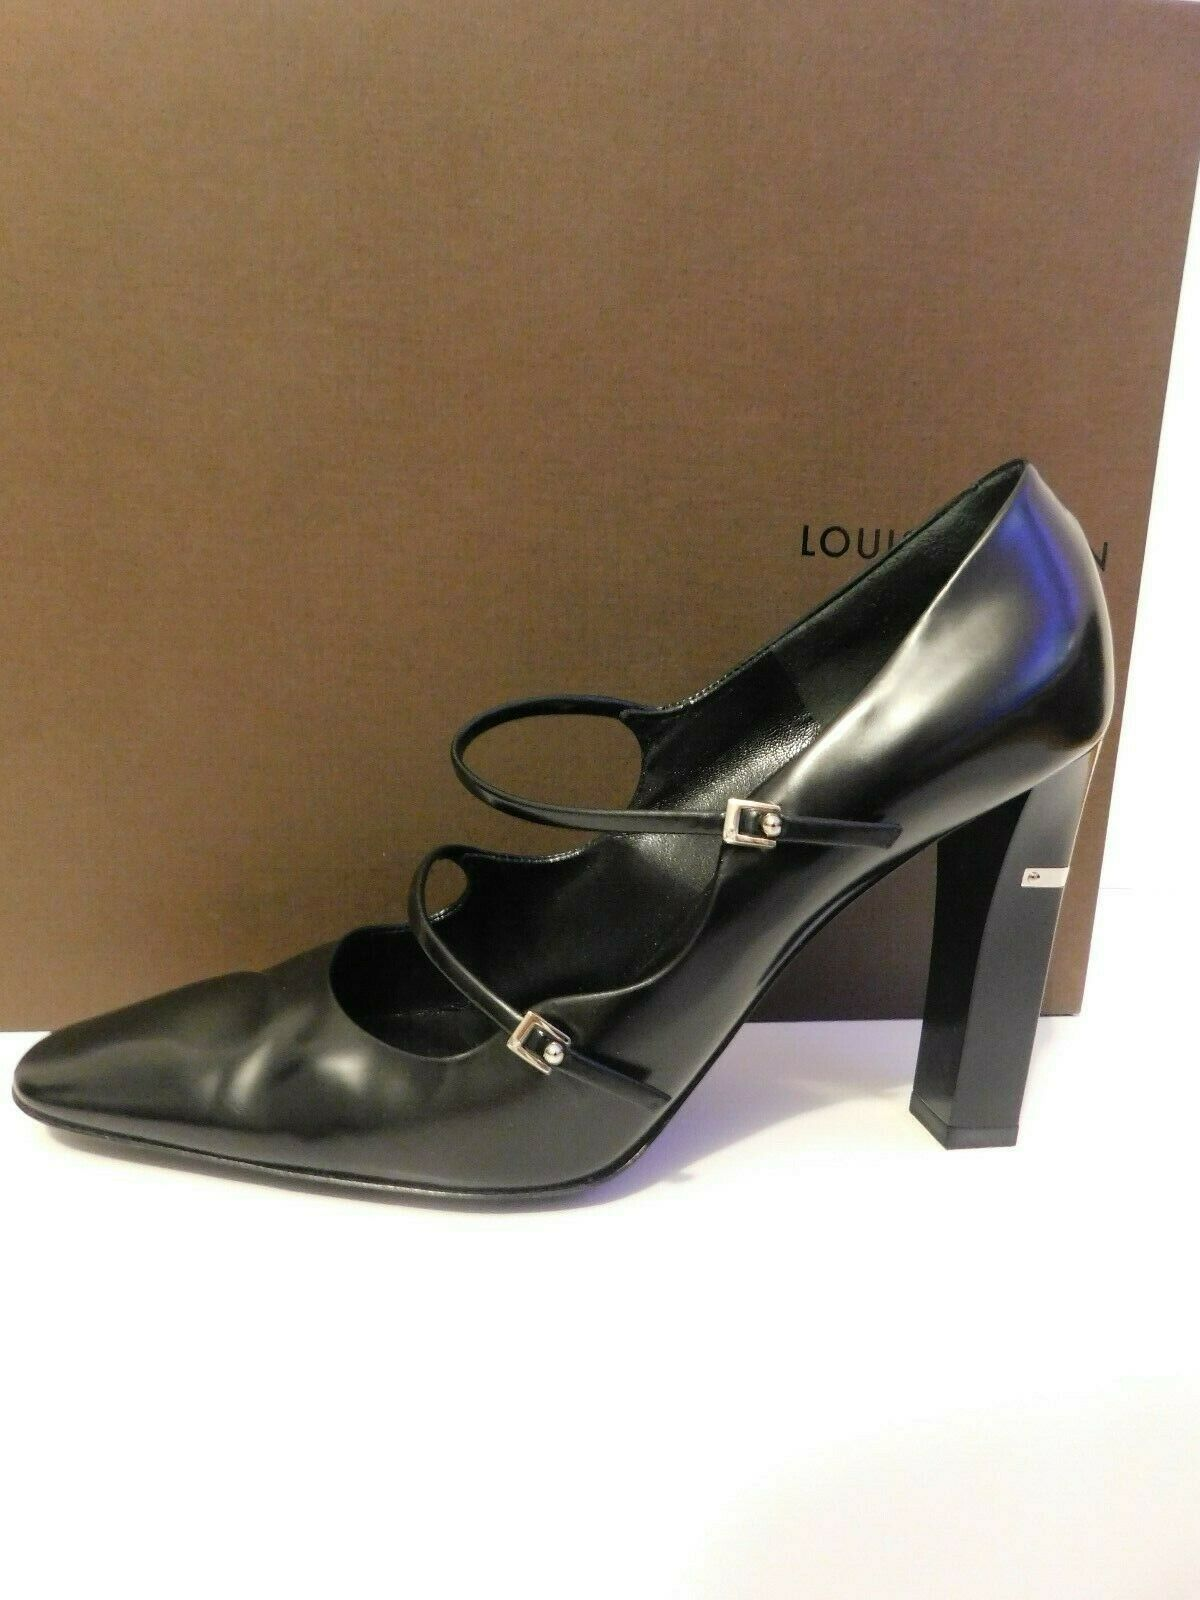 LOUIS VUITTON BLACK PUMPS SIZE 38.5 AUTHENTIC